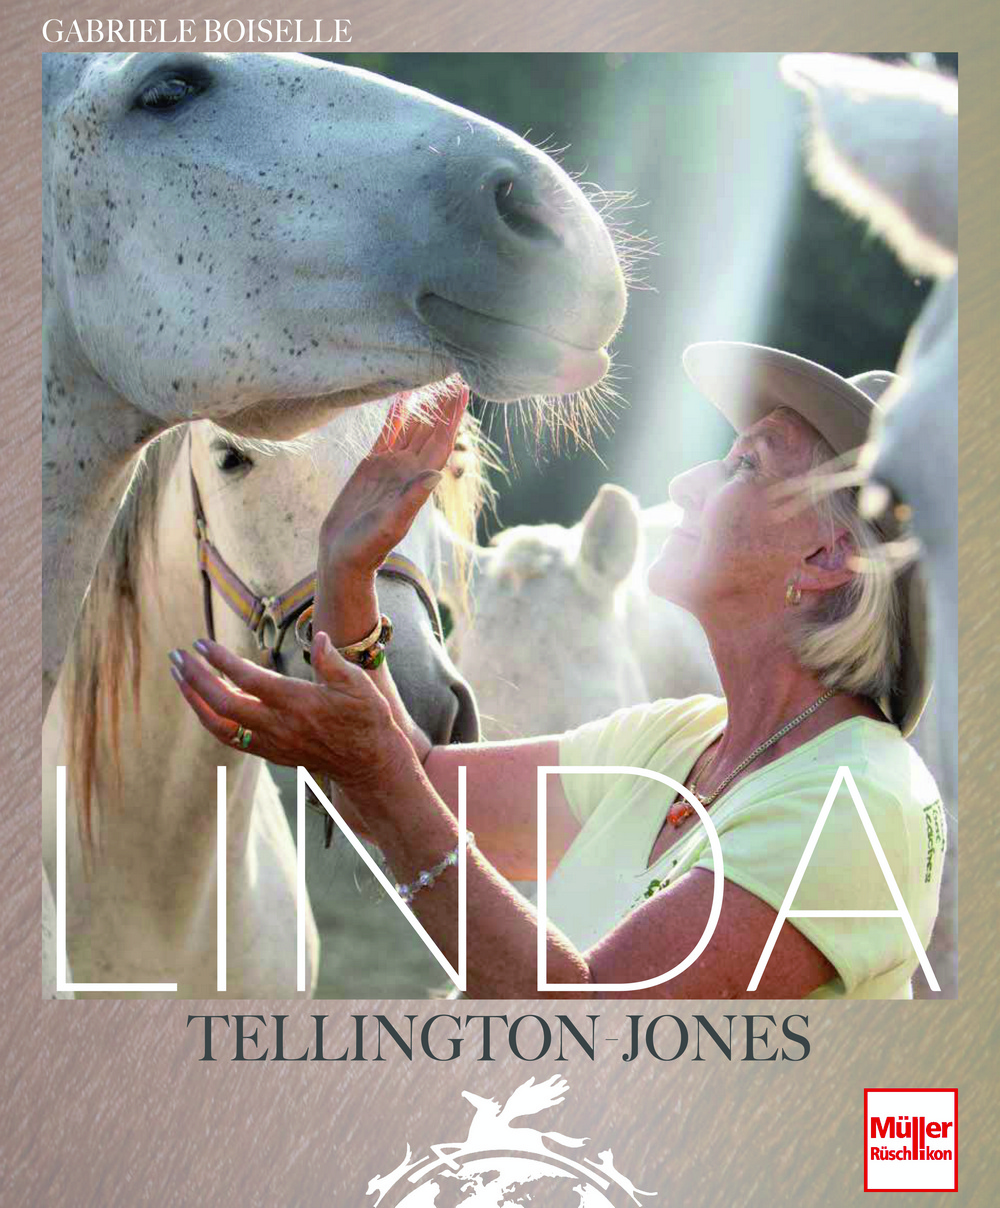 BOISELLE/TELLINGTON-JONES: LINDA Tellington-Jones NEU